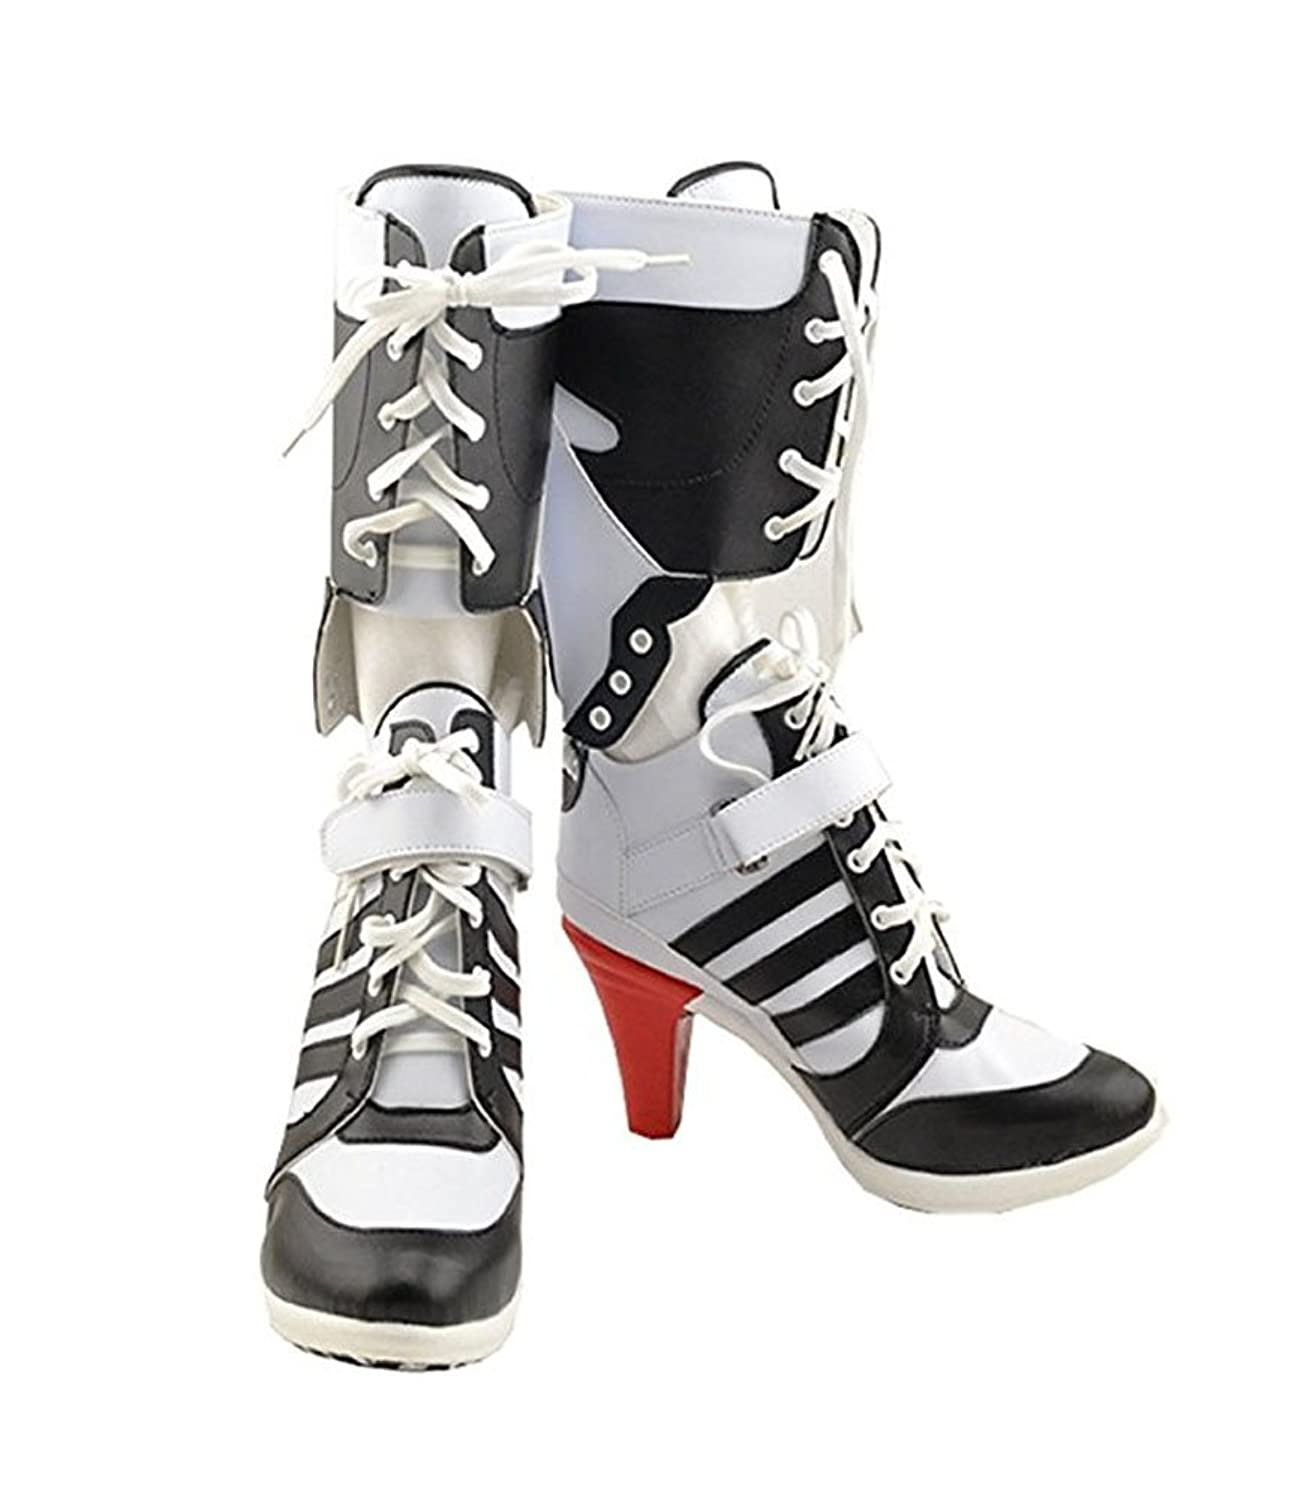 Womens Cosplay Halloween White PU Pleather Shoes High Heel Boots 3.6 incehs